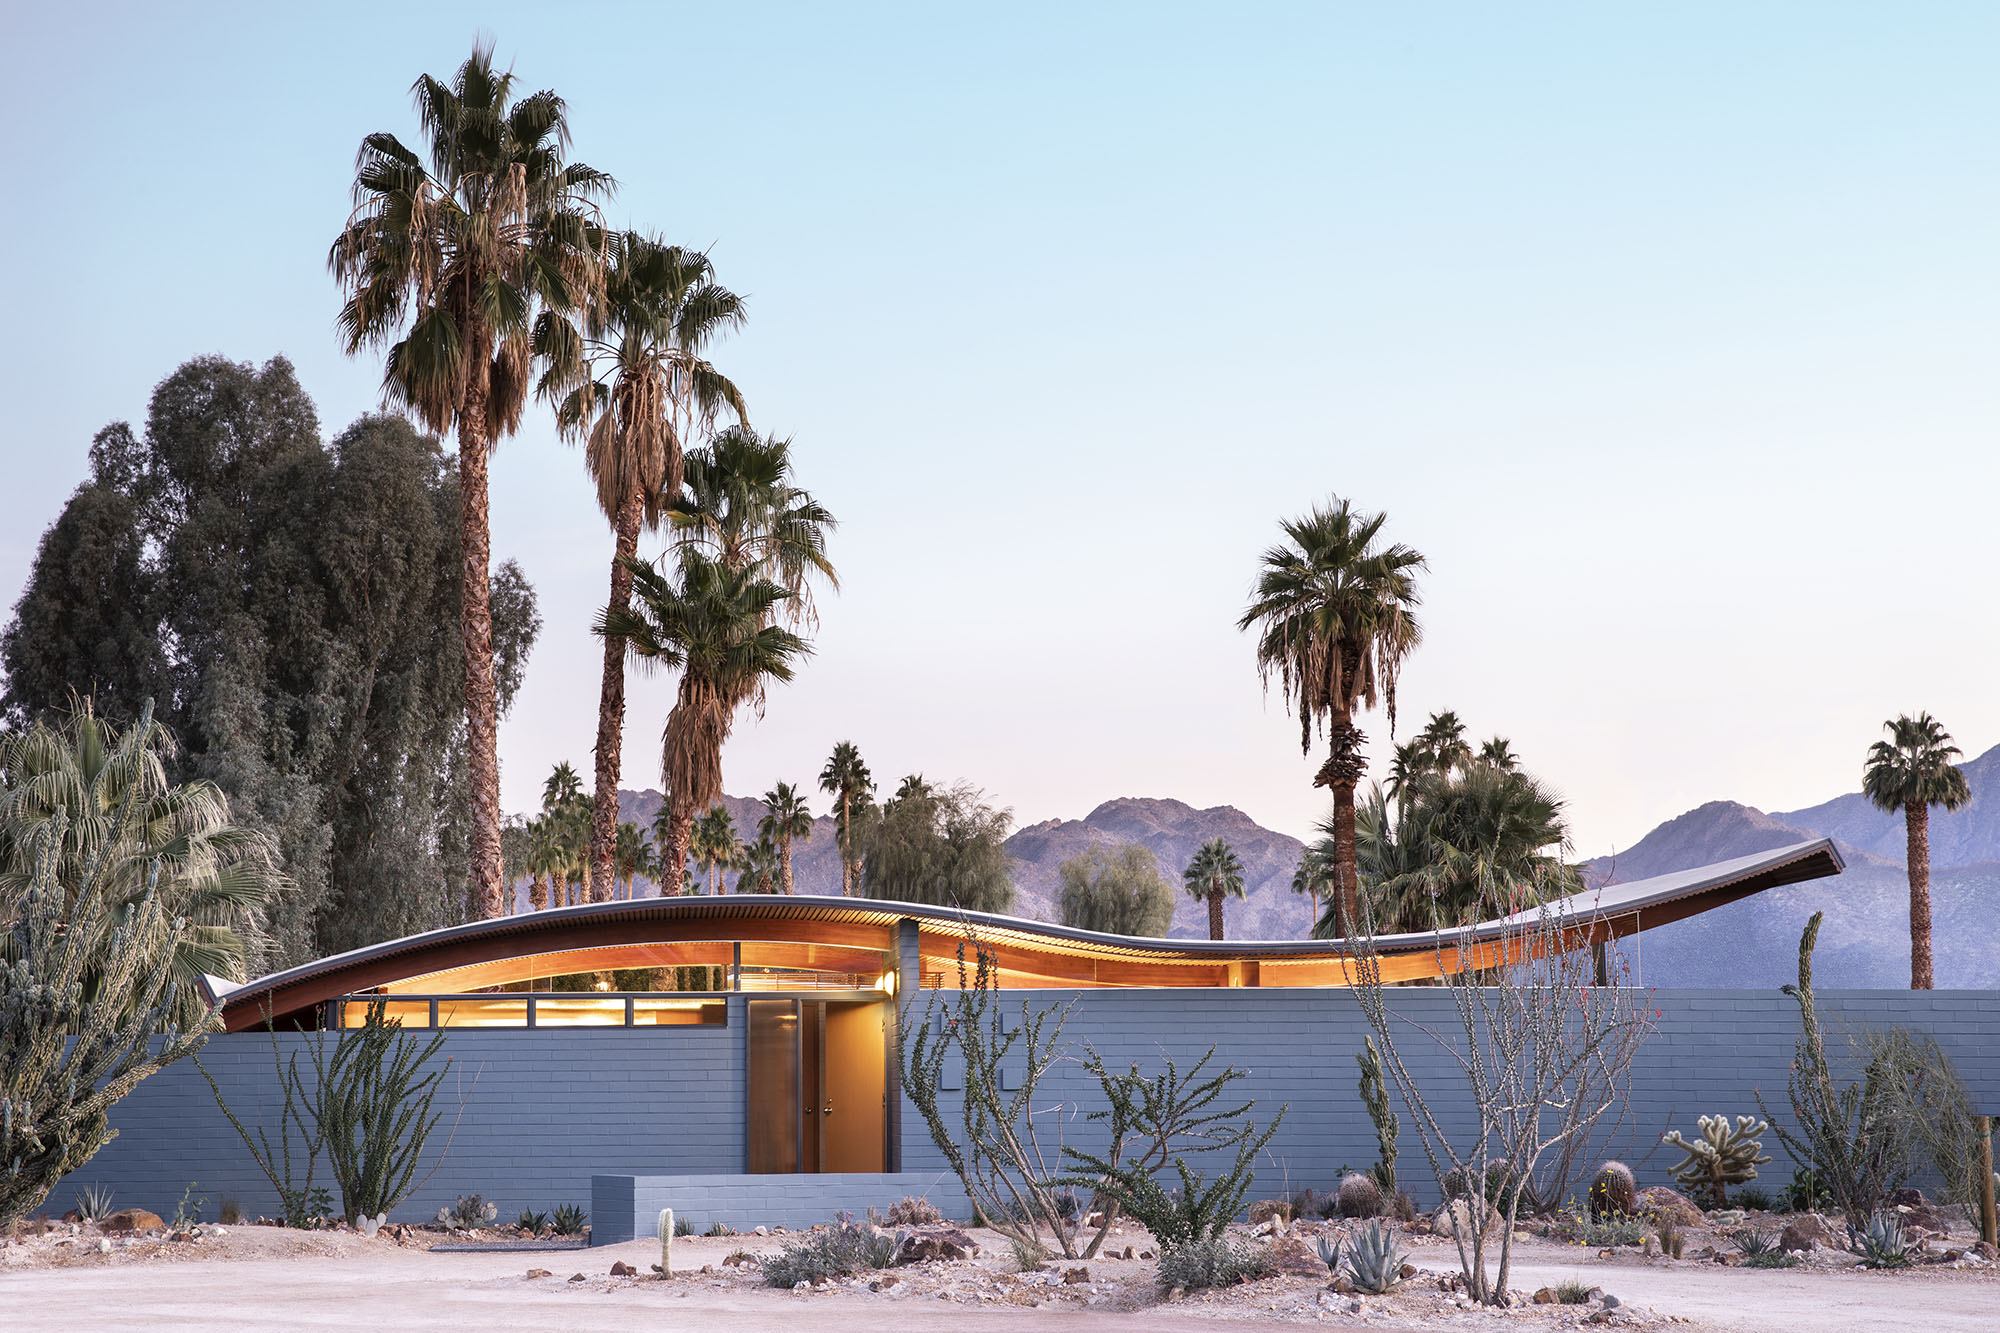 exterior view of a single story home with wave-shaped roof set in a desert landscape with palm trees